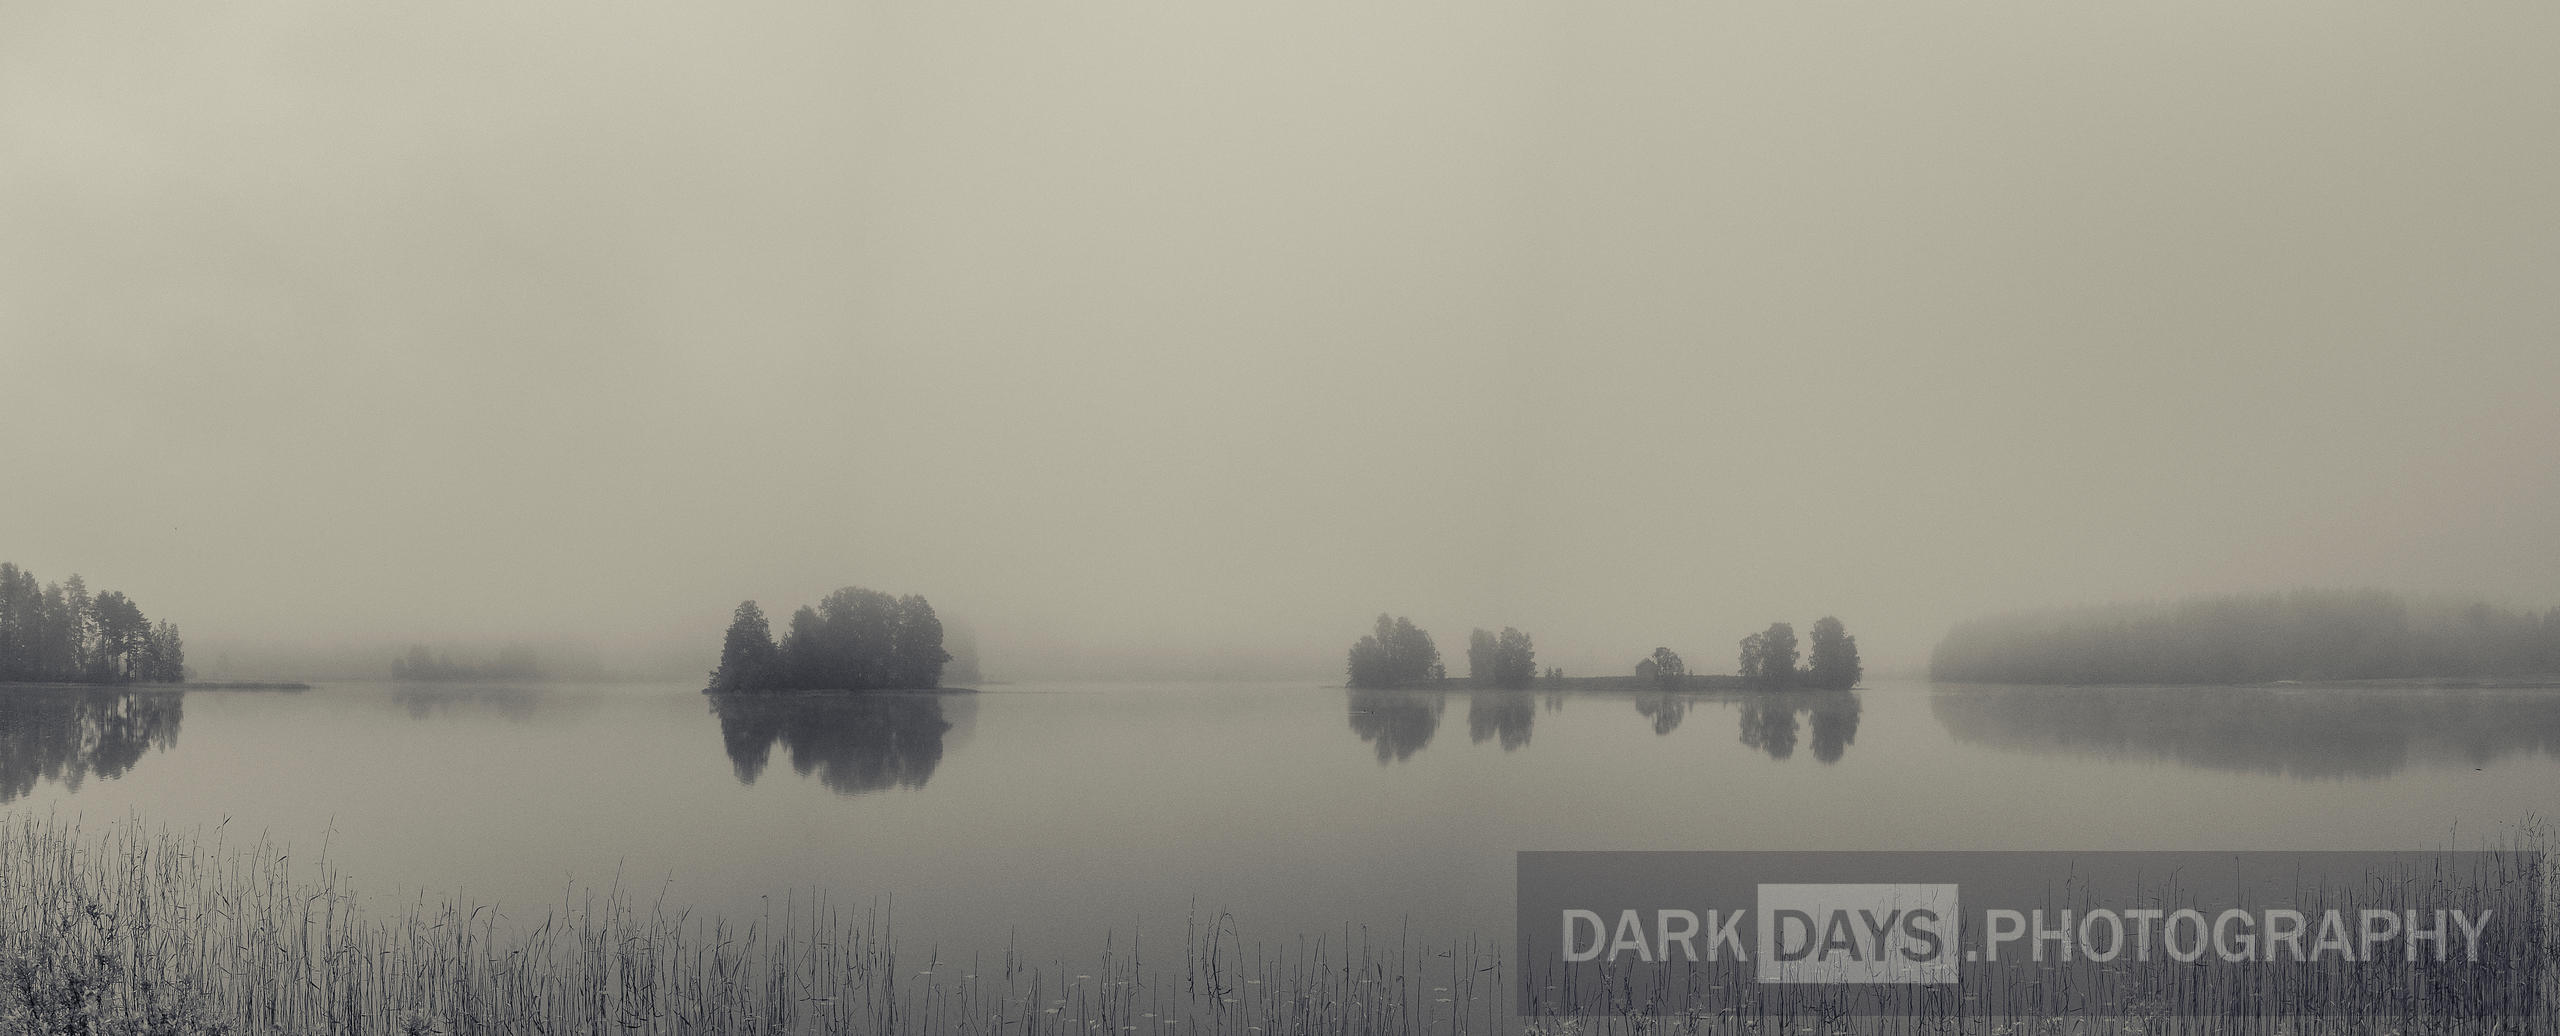 Finland - Jämsä (Misty Morning on Päijänne Lake)